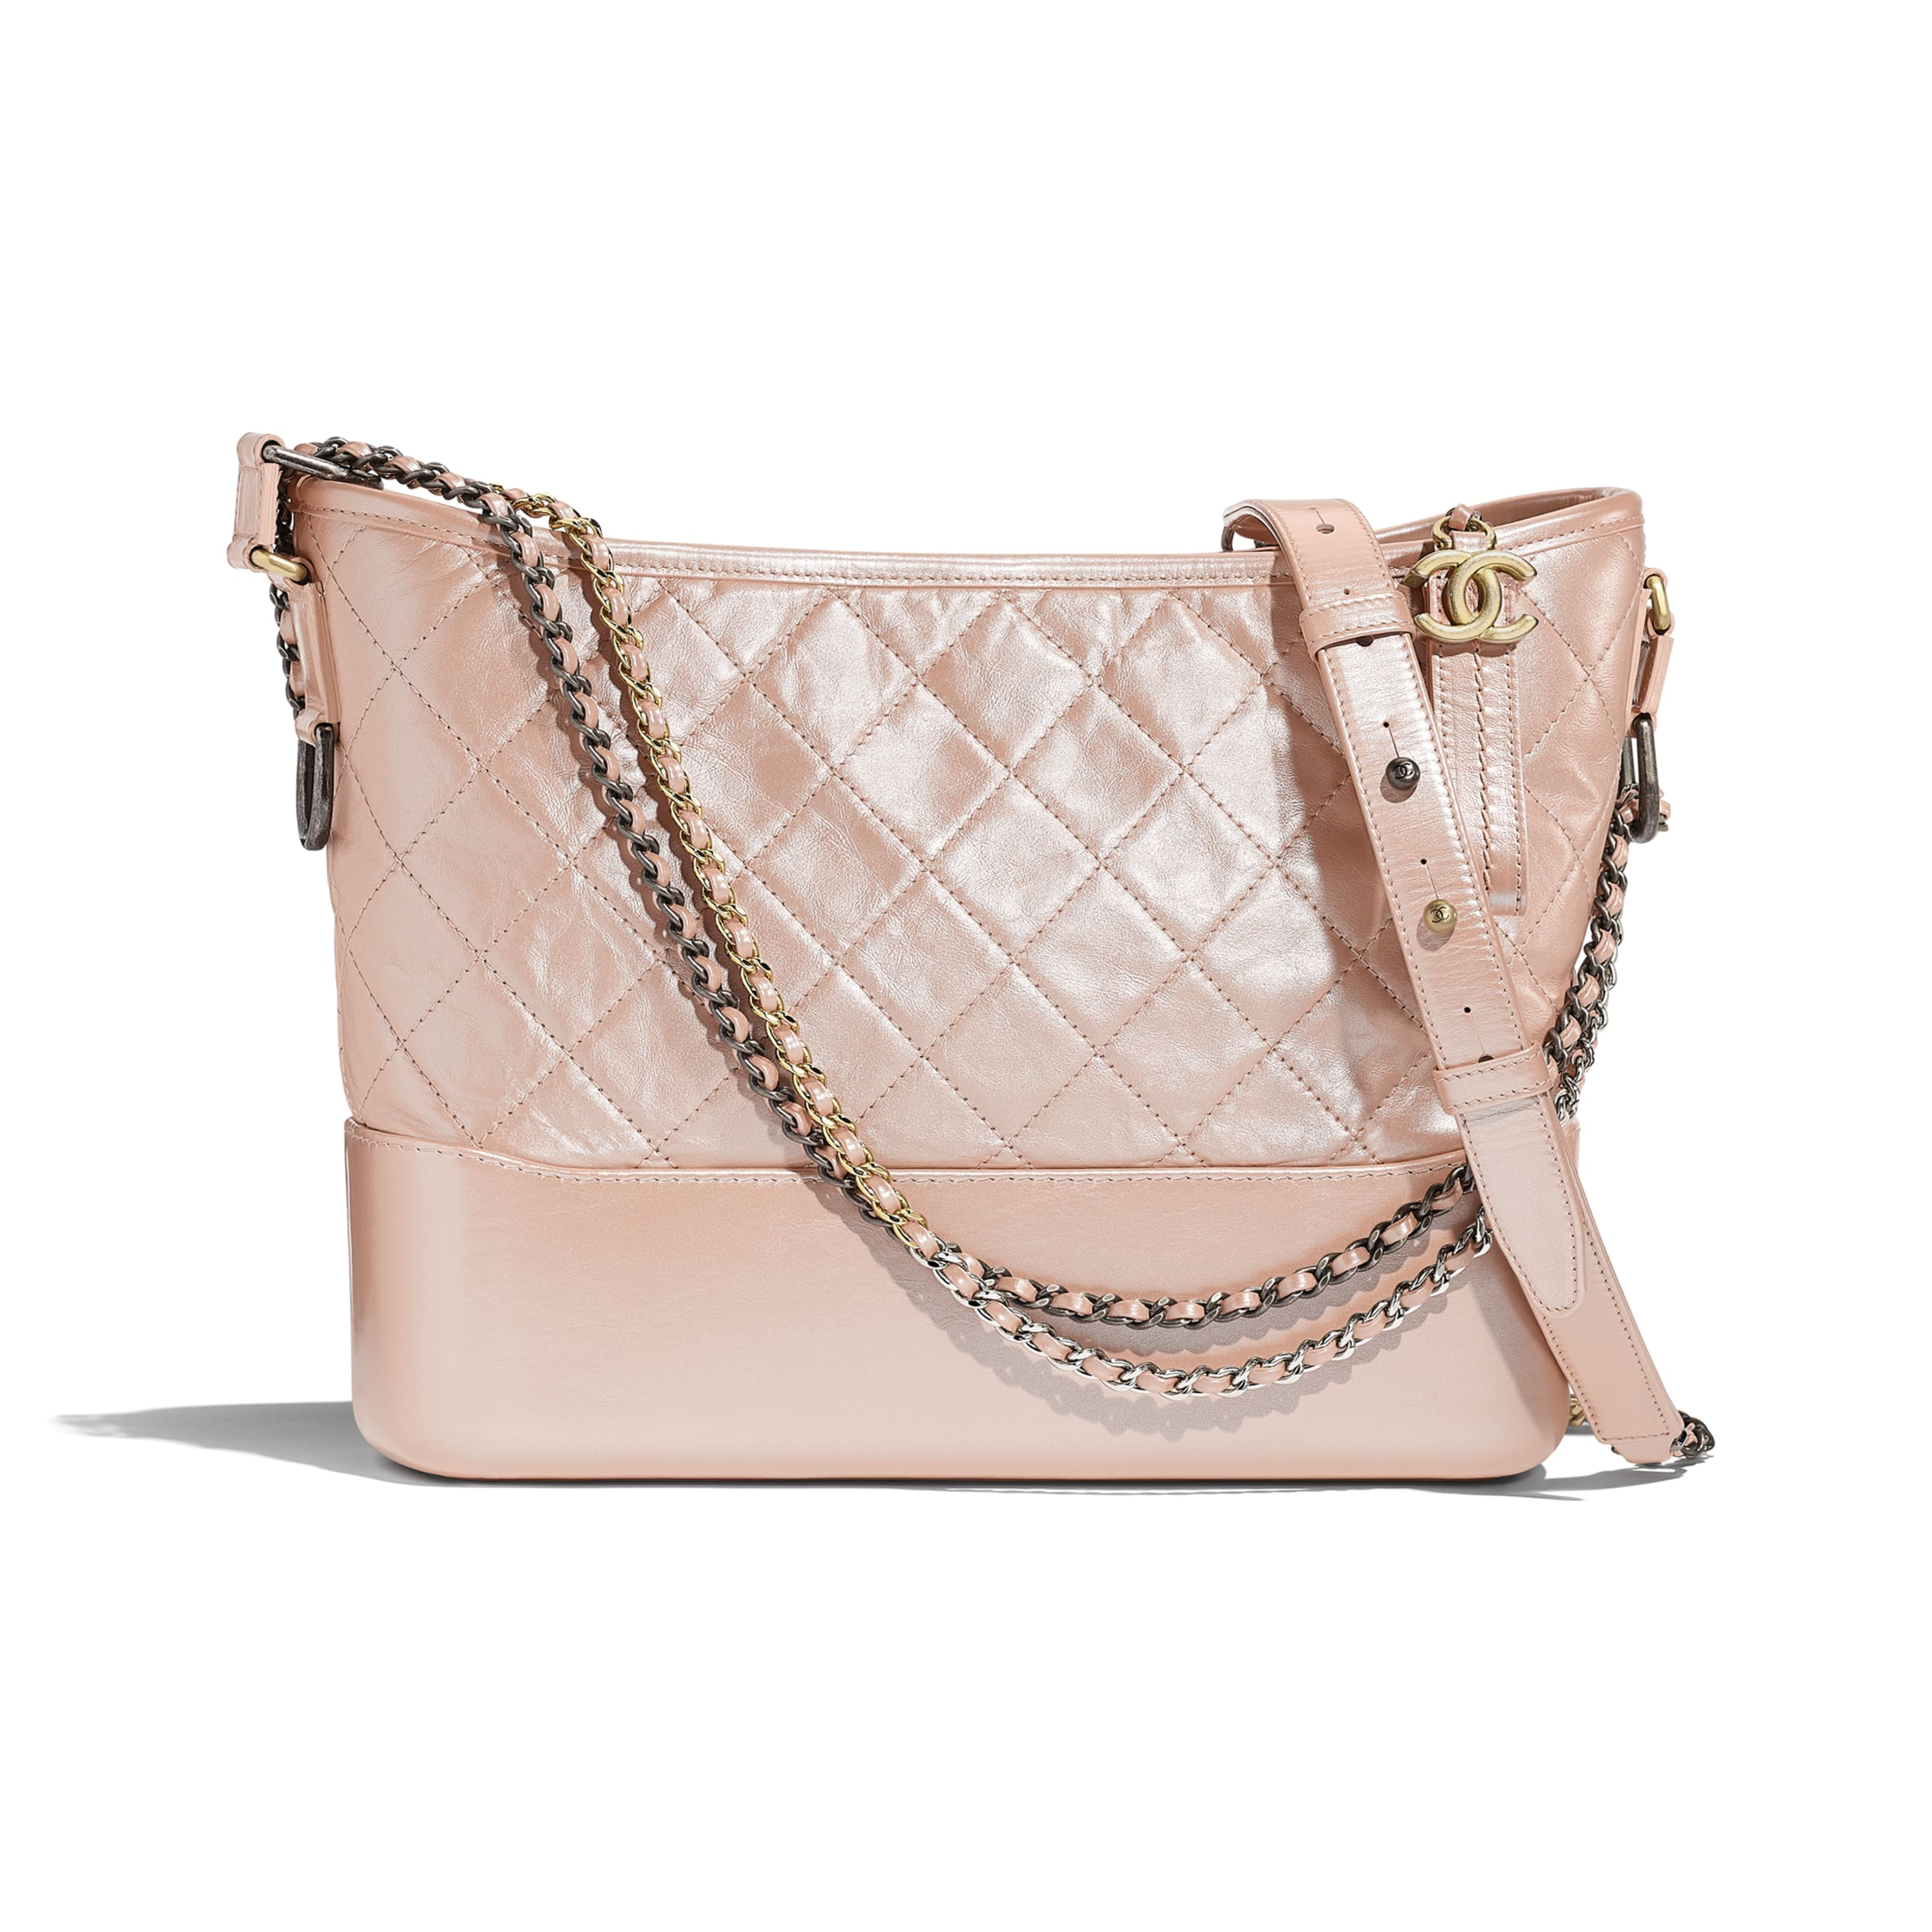 CHANEL'S GABRIELLE Hobo Bag - Light Pink - Iridescent Aged Calfskin, Gold-Tone & Silver-Tone Metal - Default view - see standard sized version